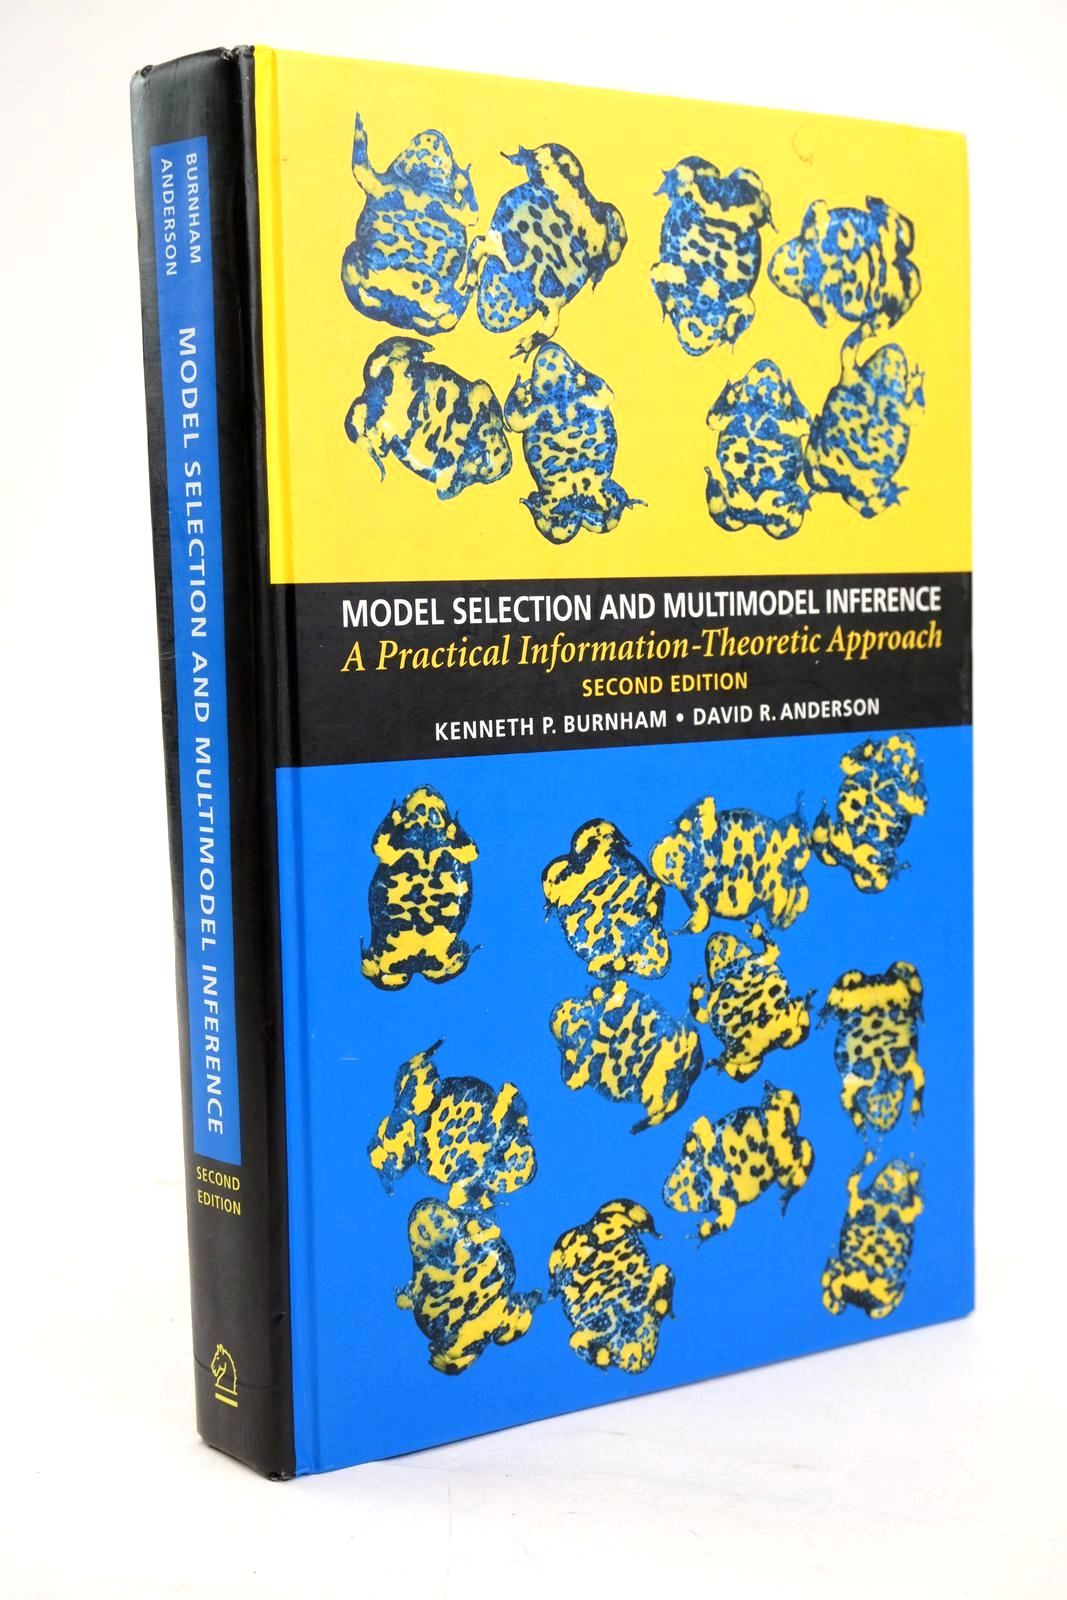 Photo of MODEL SELECTION AND MULTIMODEL INFERENCE written by Burnham, Kenneth P. Anderson, David R. published by Springer (STOCK CODE: 1319622)  for sale by Stella & Rose's Books